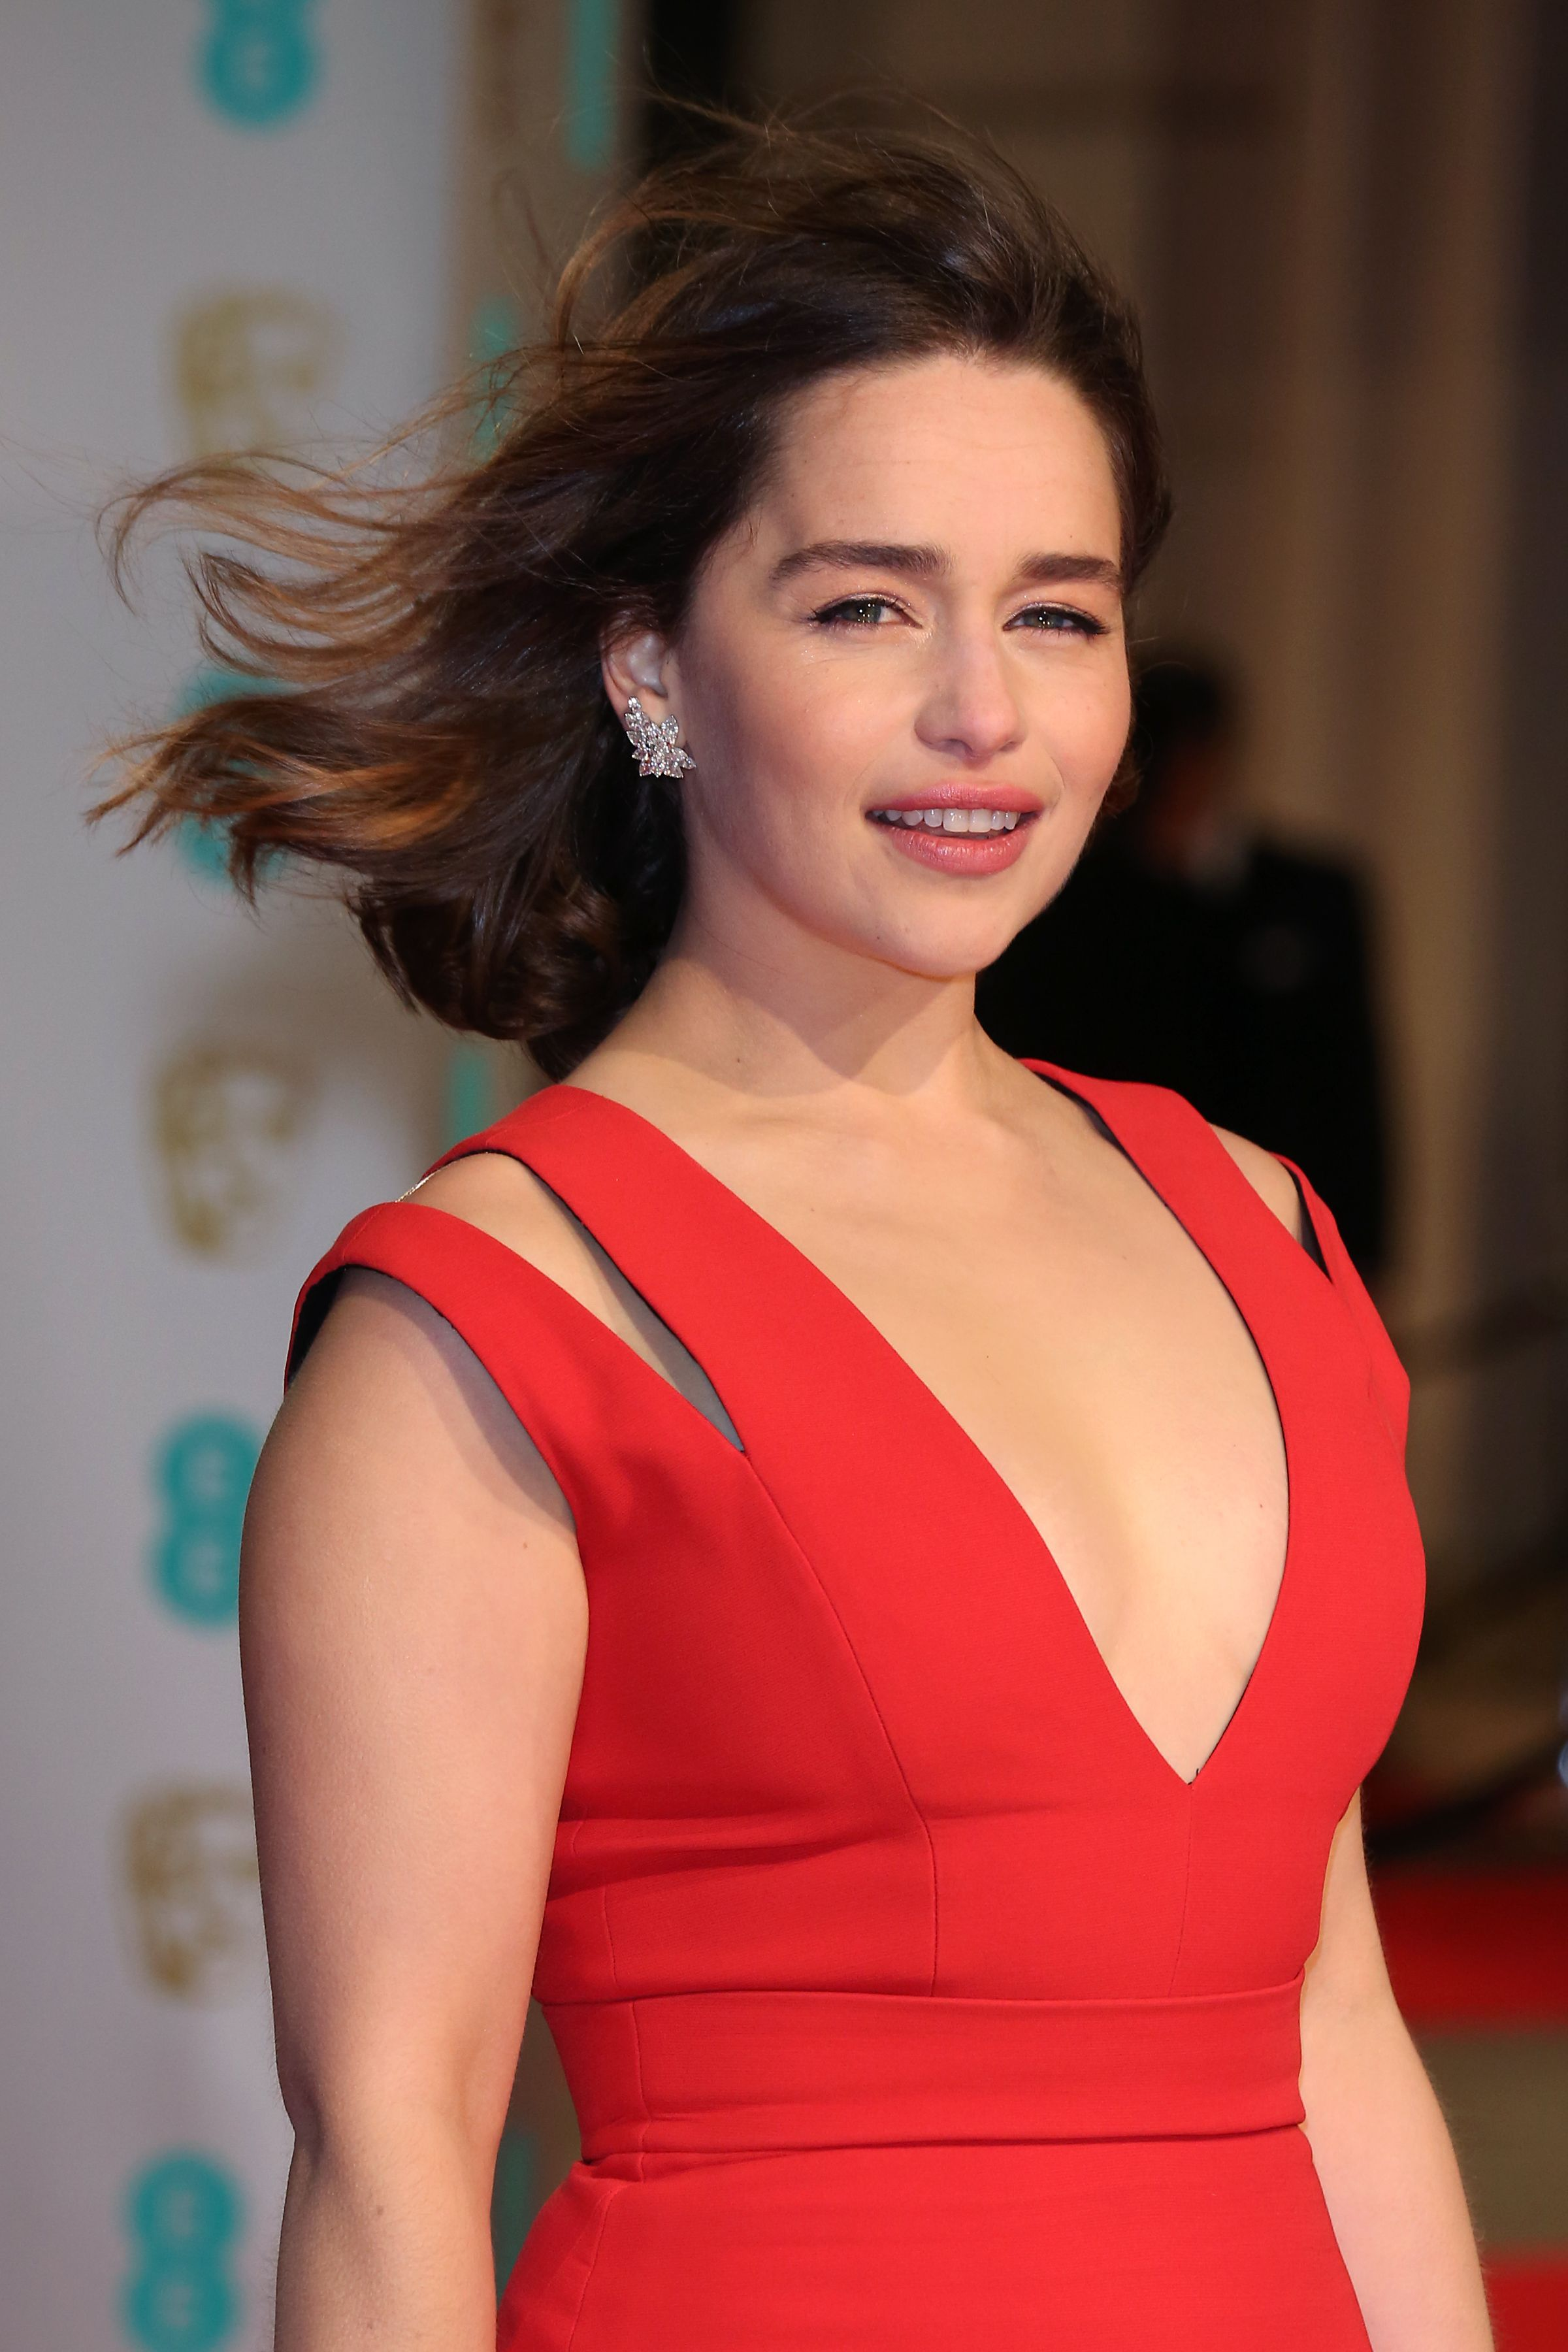 Pin By Fabien Bedot On Emilia Clarke Pinterest Emilia Clarke